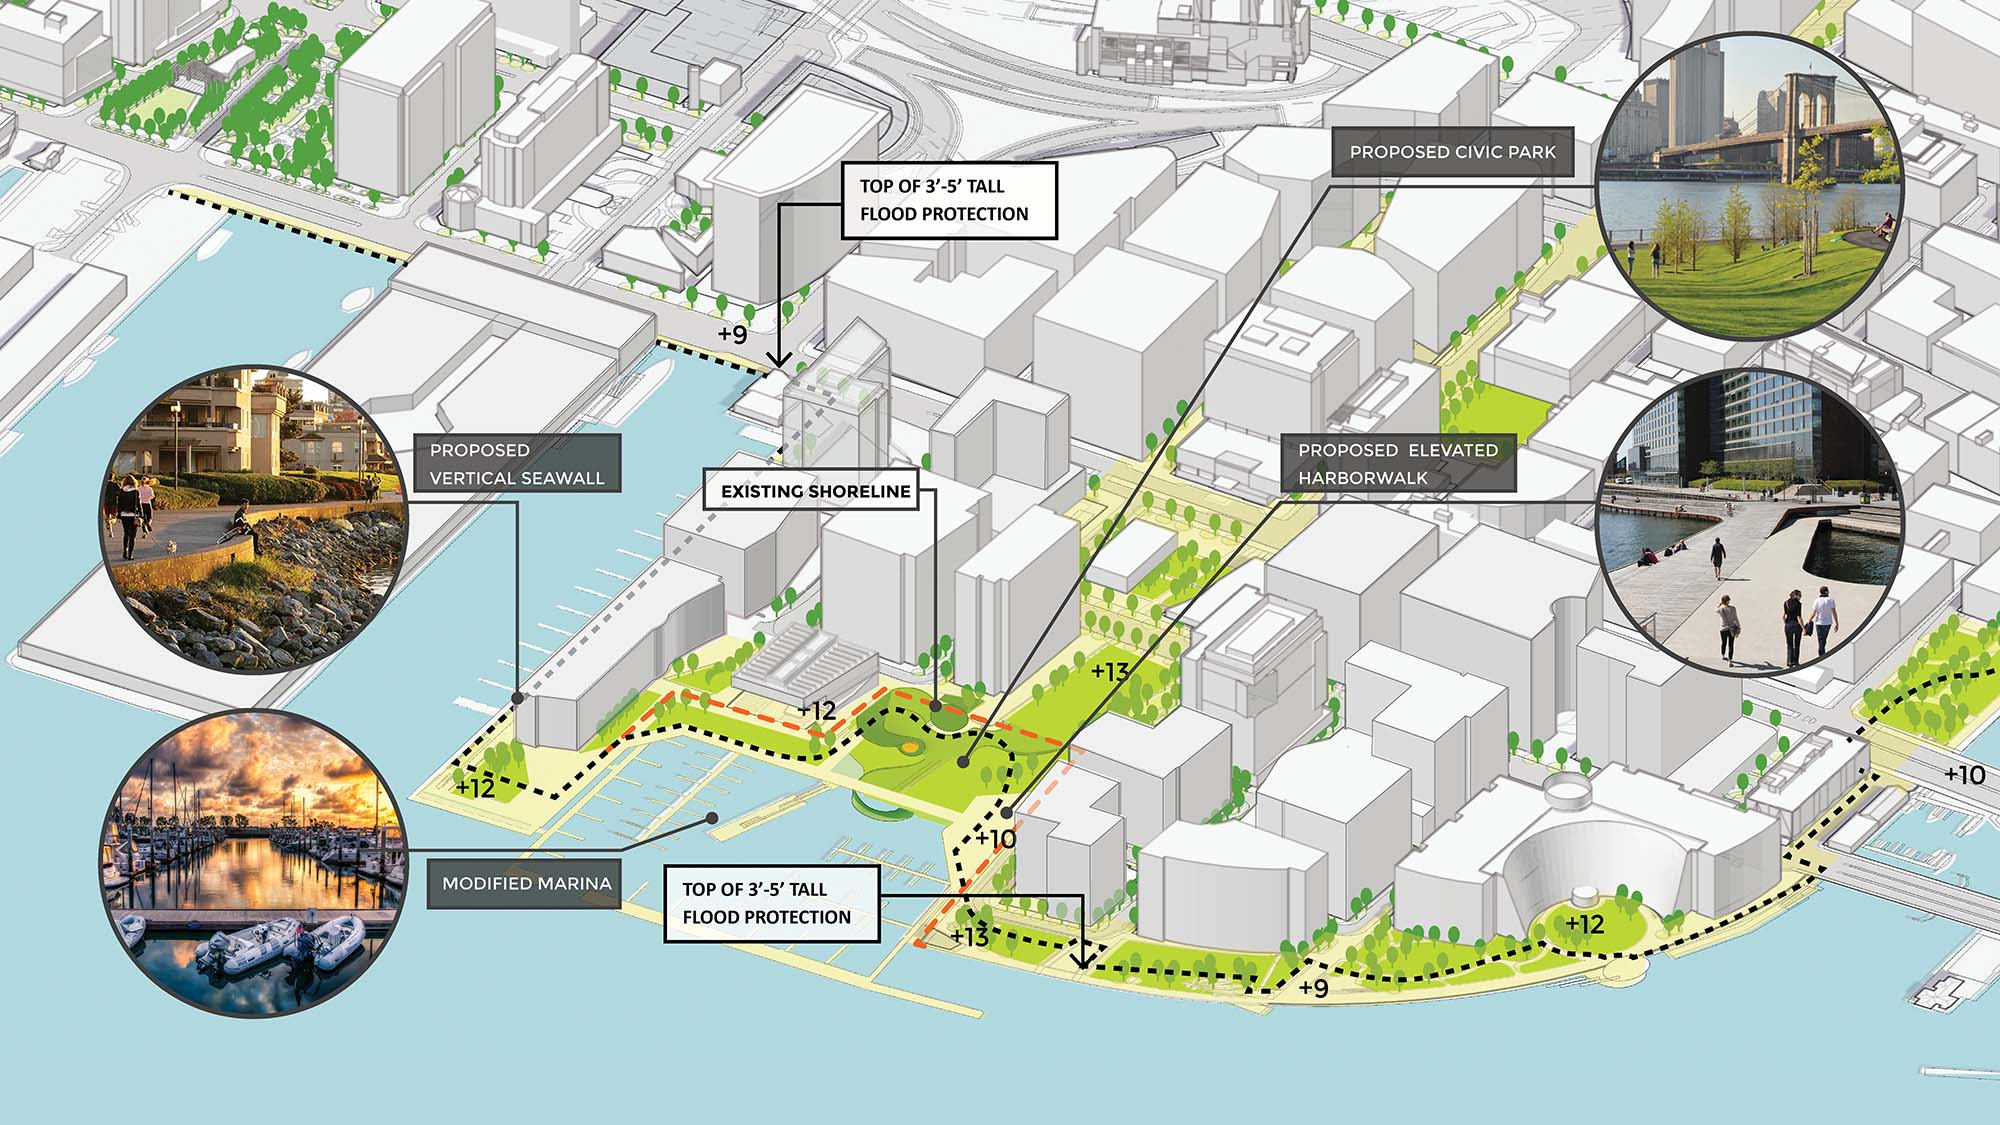 Image for south boston waterfront mid term strategy with park space, harborwalk, and marina